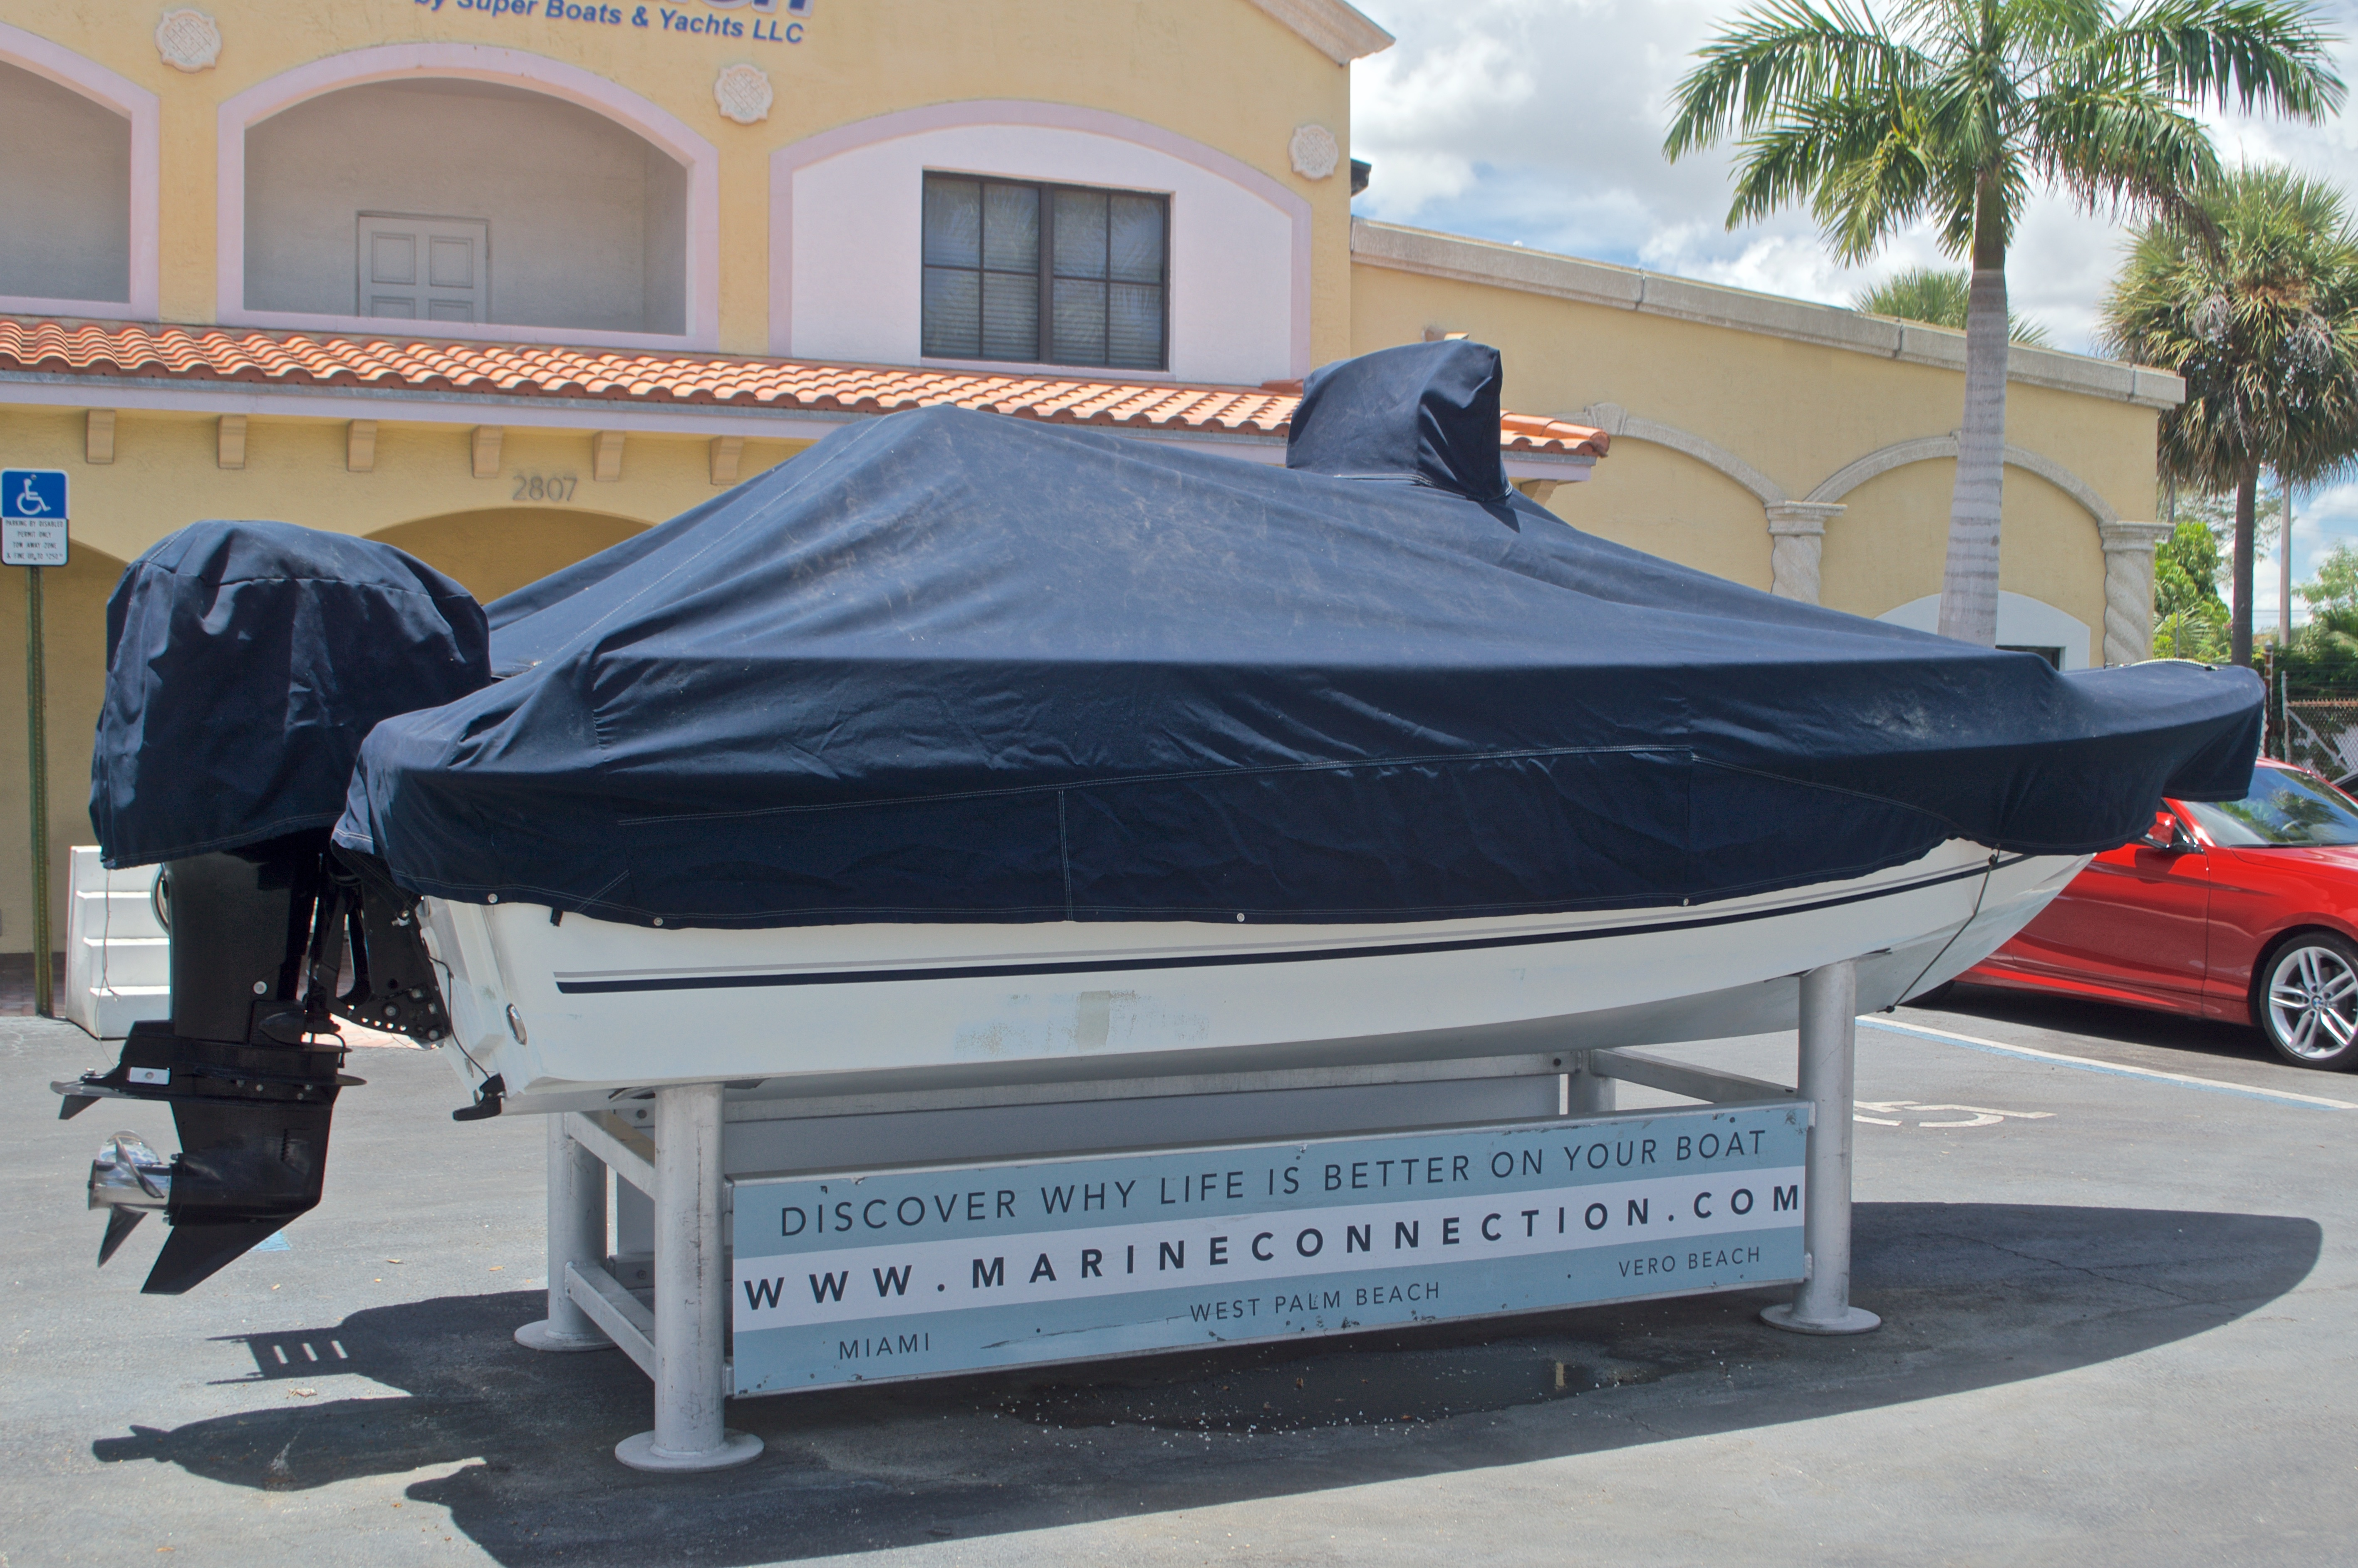 Thumbnail 14 for Used 2006 Sea Boss 190 Center Console boat for sale in West Palm Beach, FL